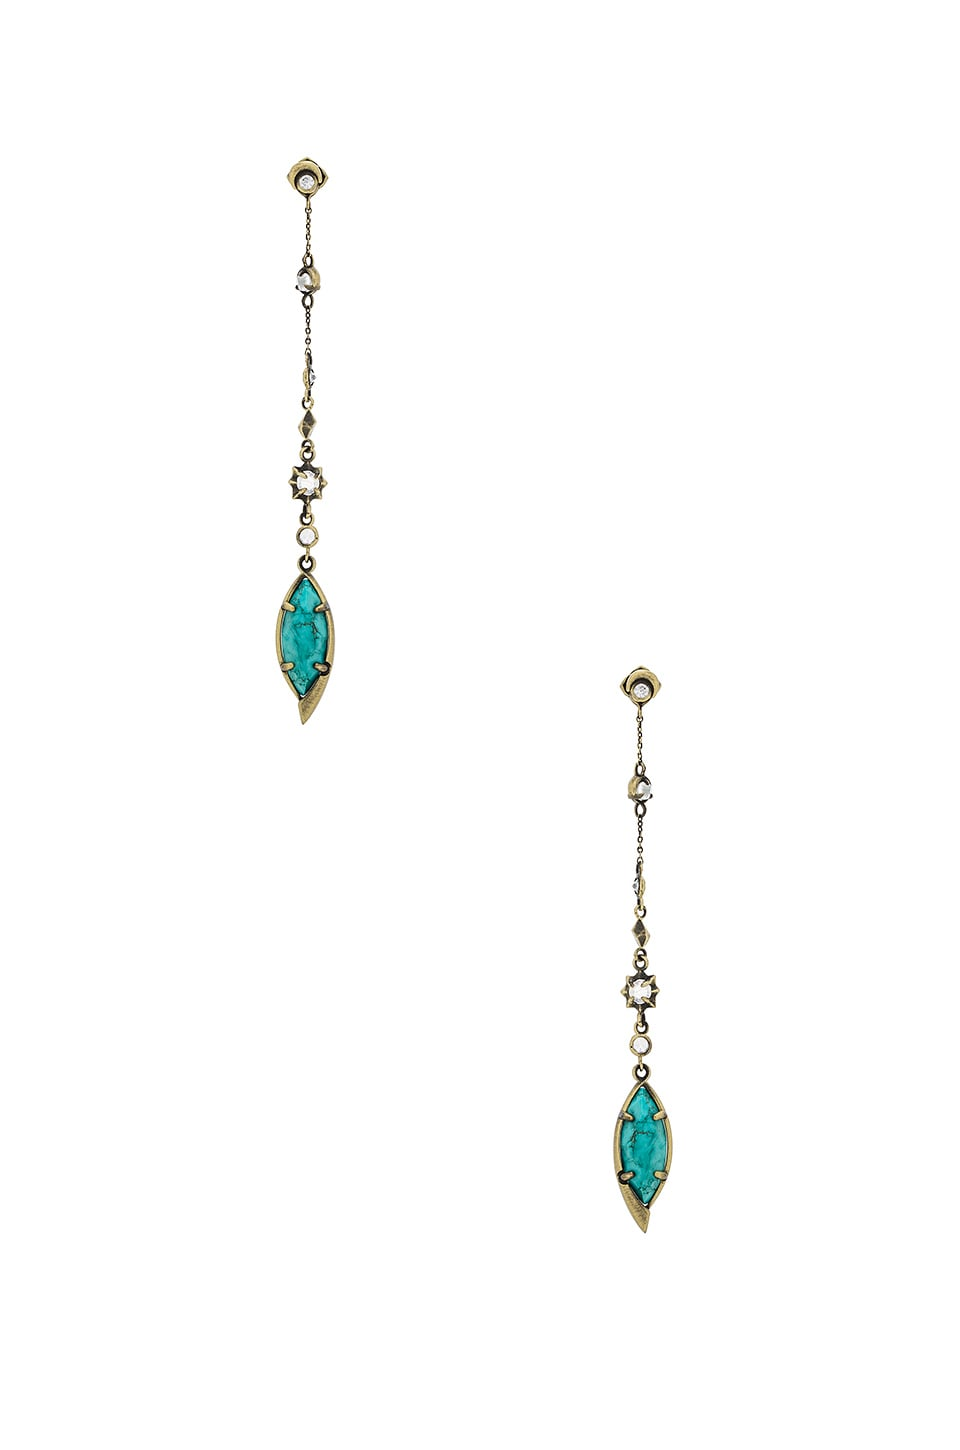 Kendra Scott Lane Shoulder Duster Ear Jacket in Variegated Turquoise